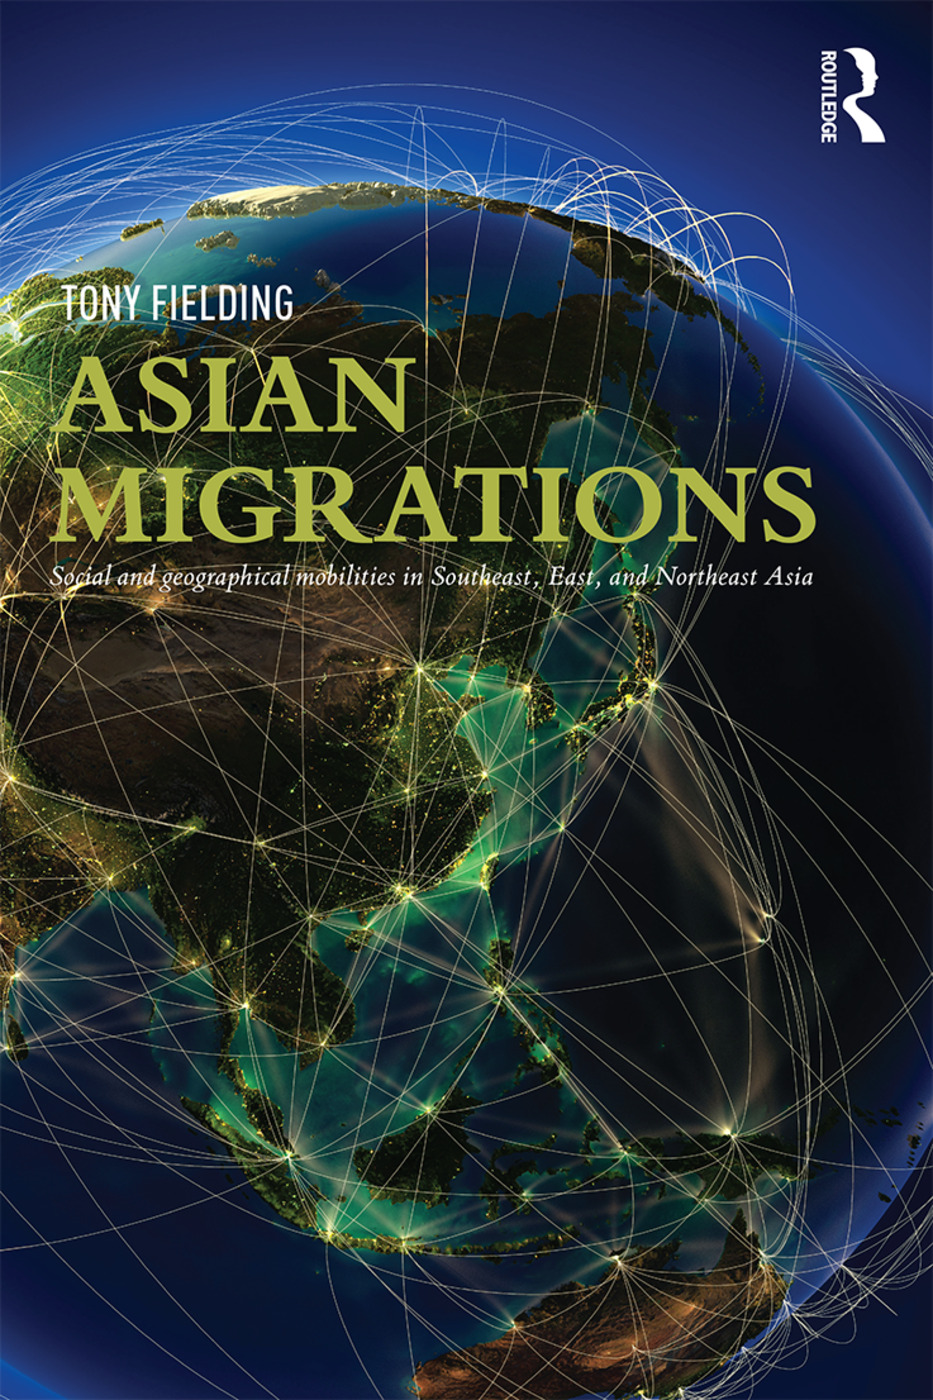 Asian Migrations: Social and Geographical Mobilities in Southeast, East, and Northeast Asia (Paperback) book cover